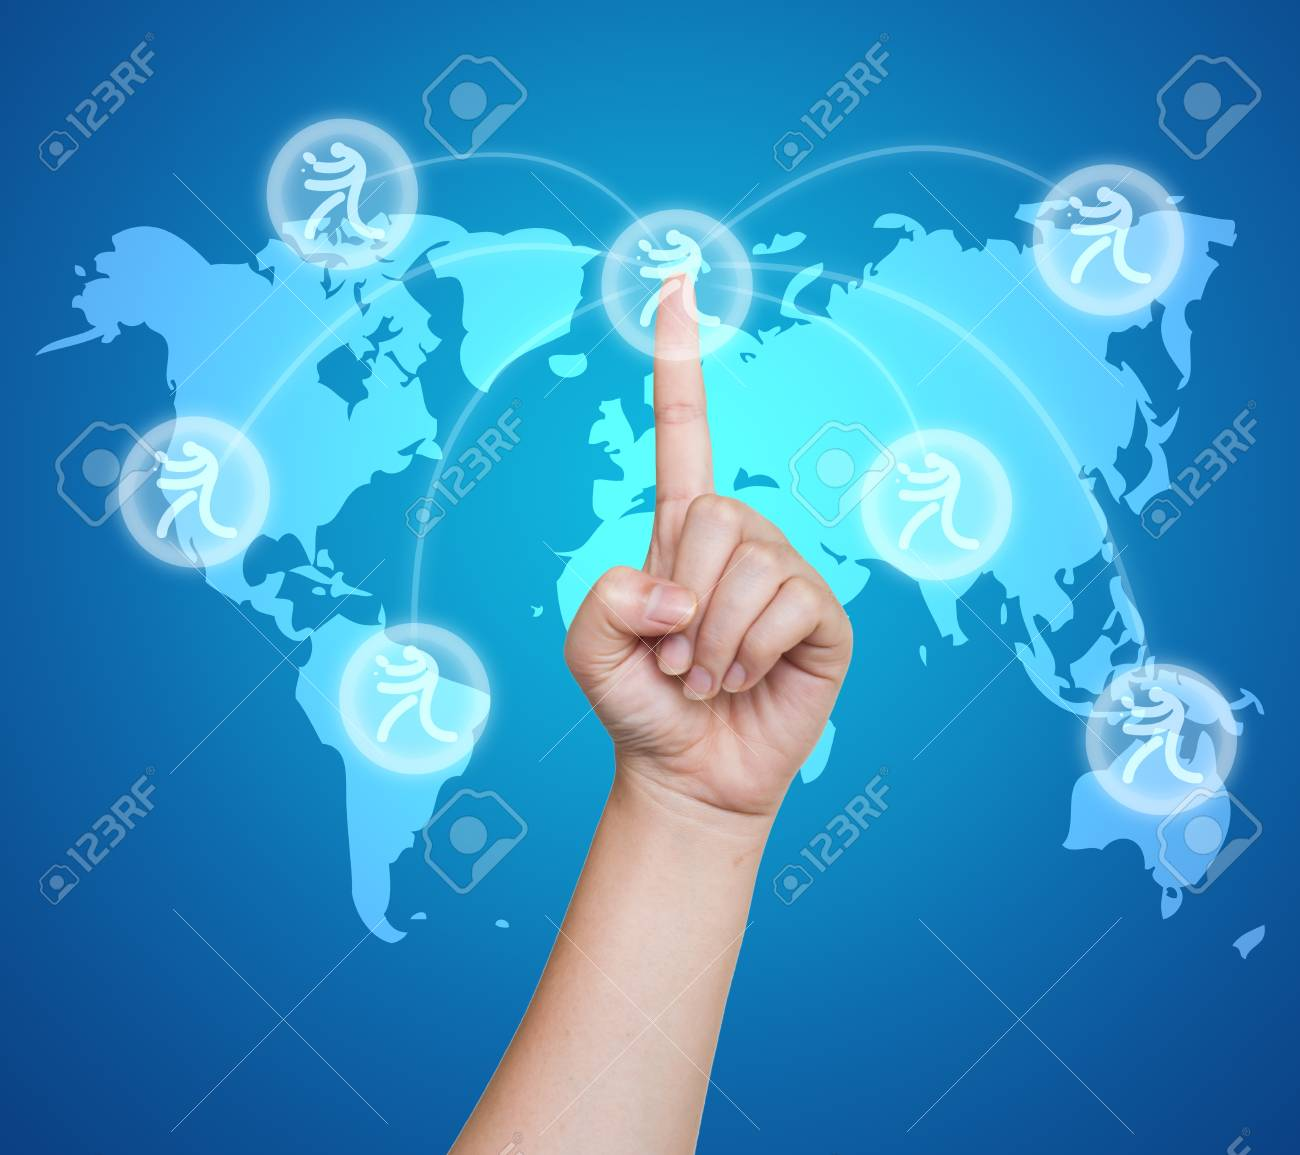 Hand pushing sport table tennis button on a touch screen interface Stock Photo - 16187545